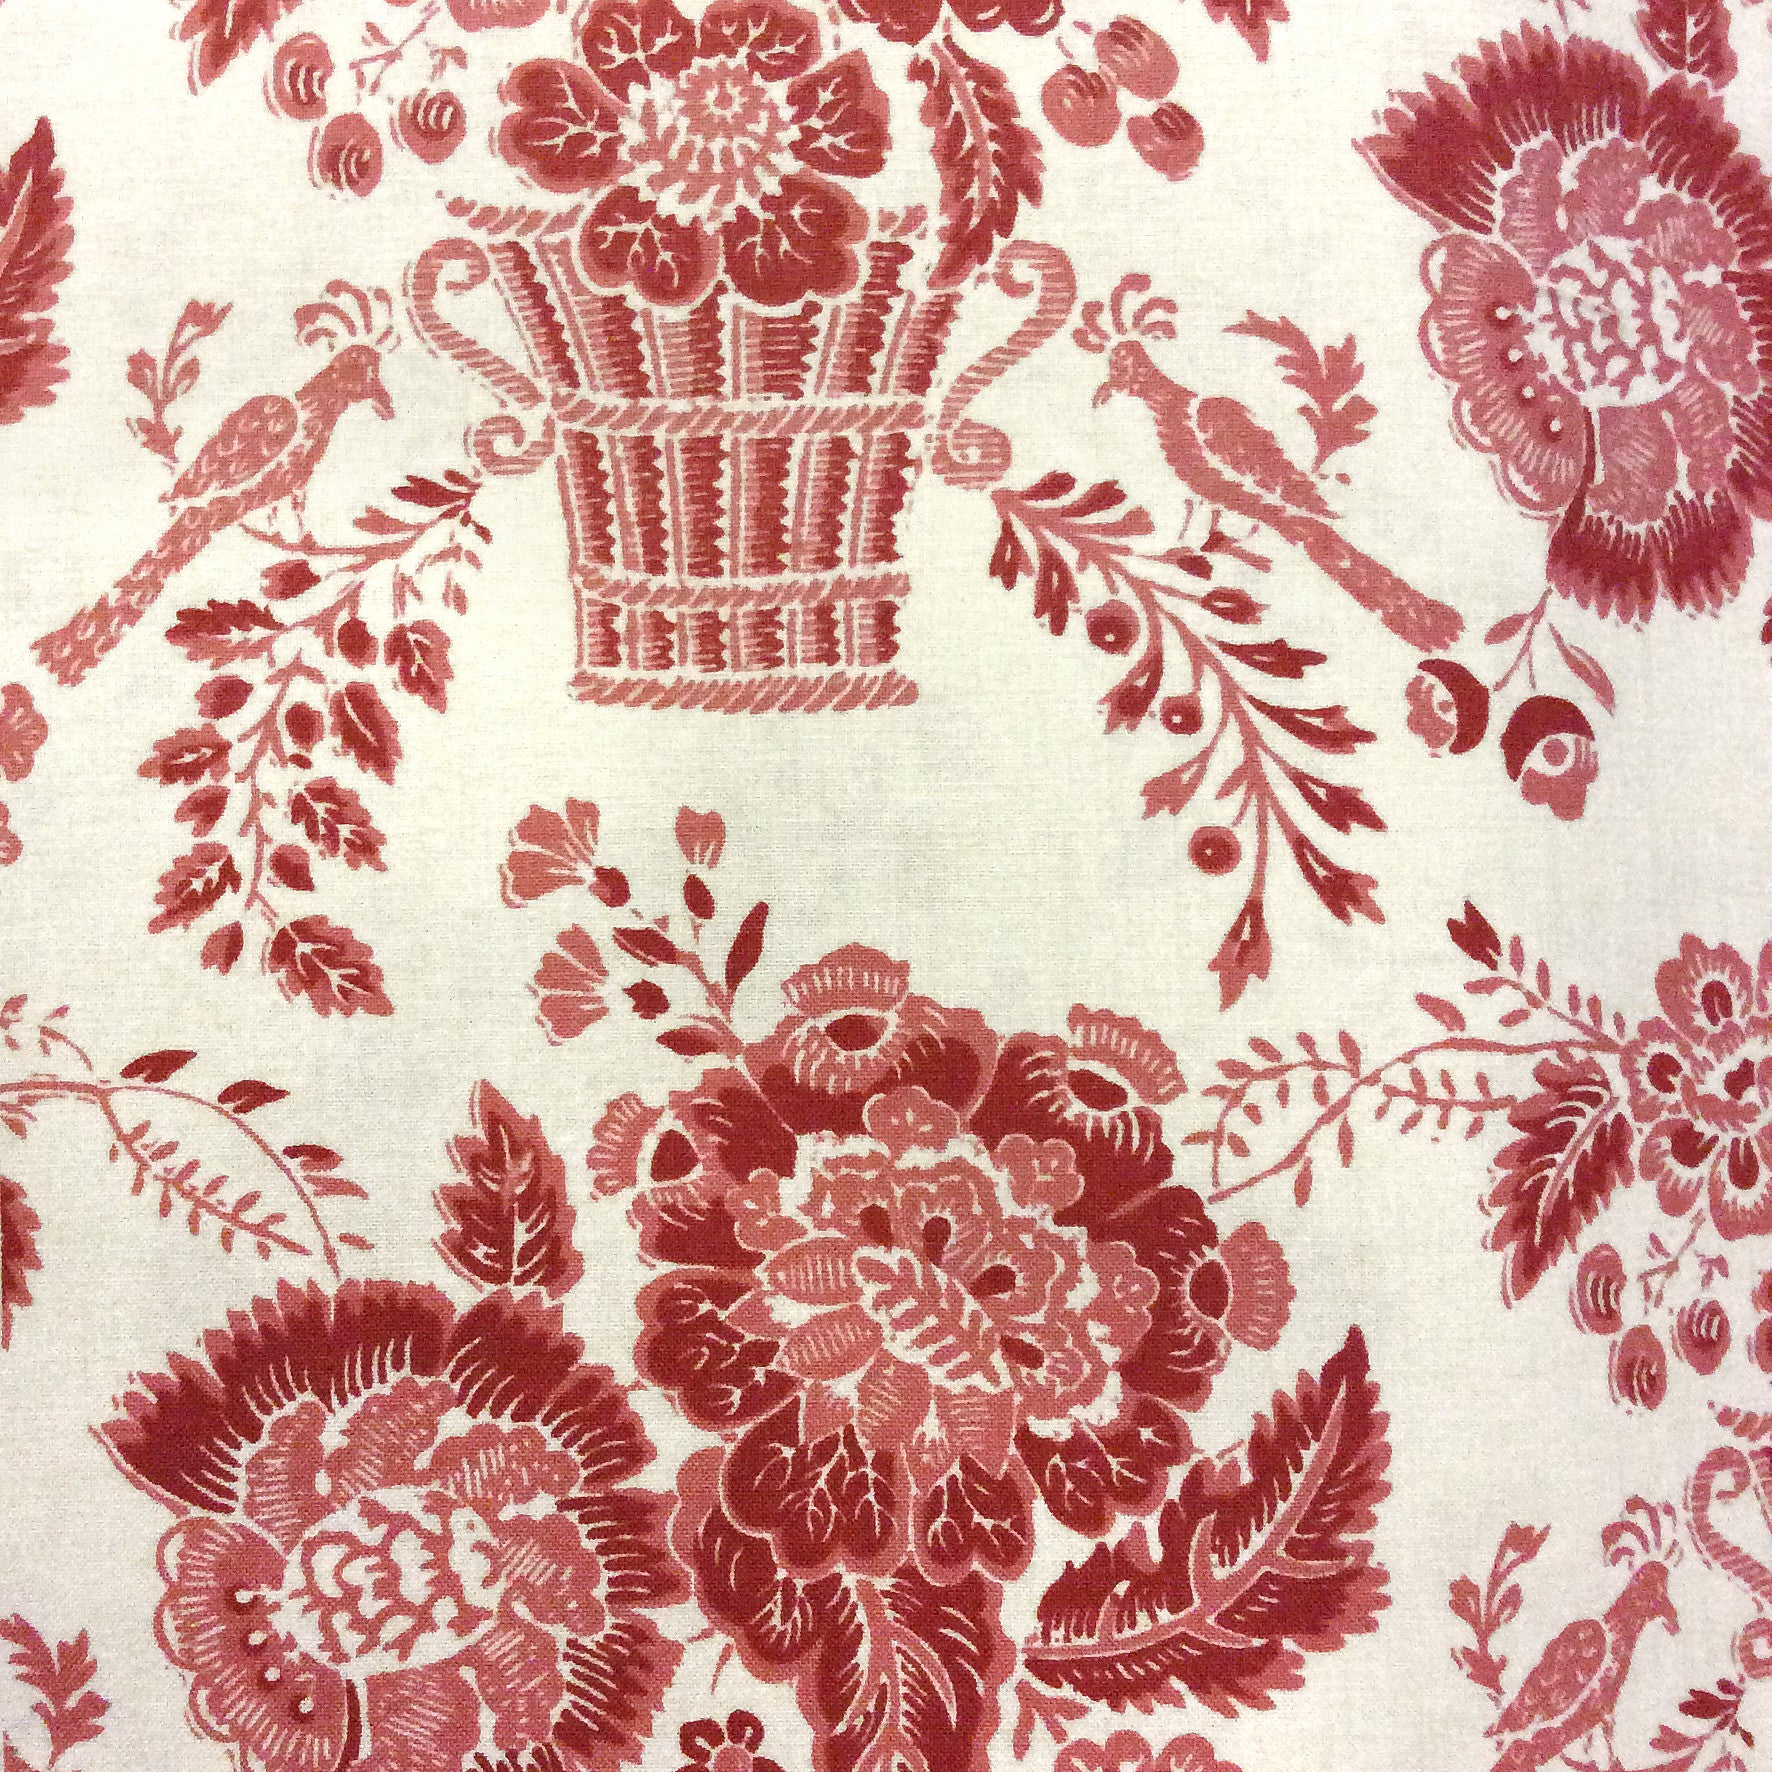 Le Bouquet Francais 13661 17 Moda Fabric